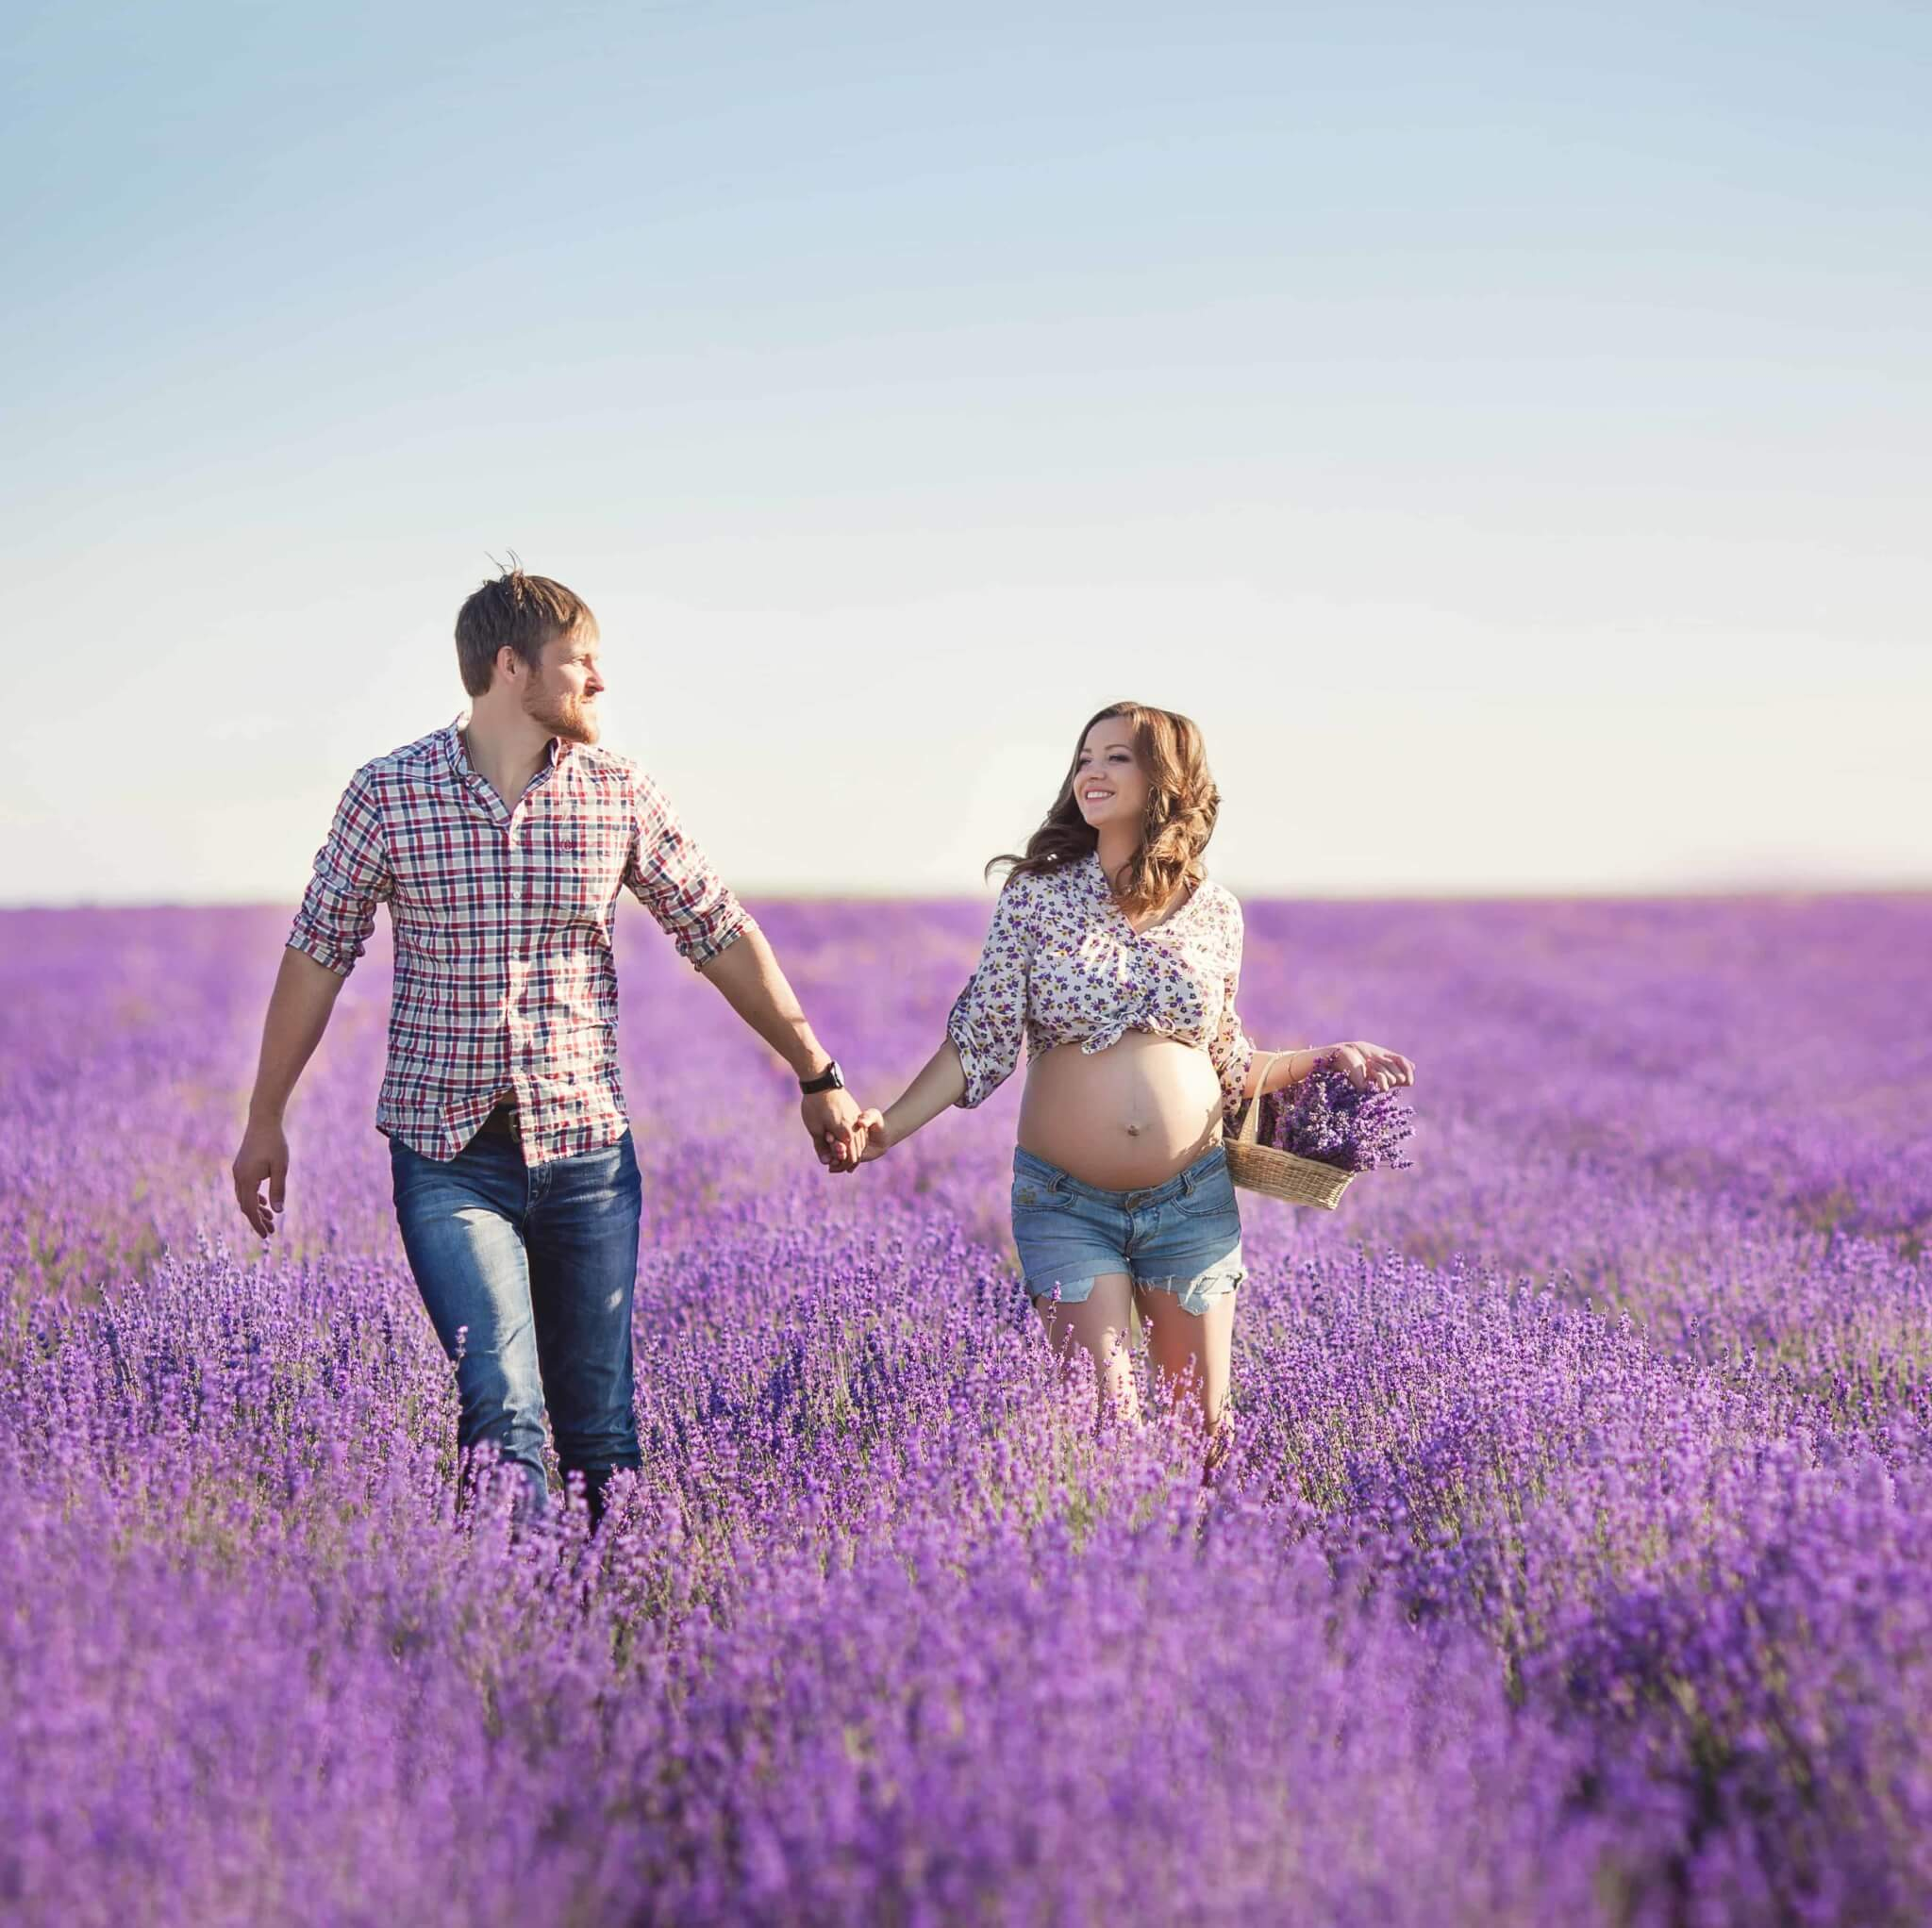 A couple having a walk in a lush field of lavender